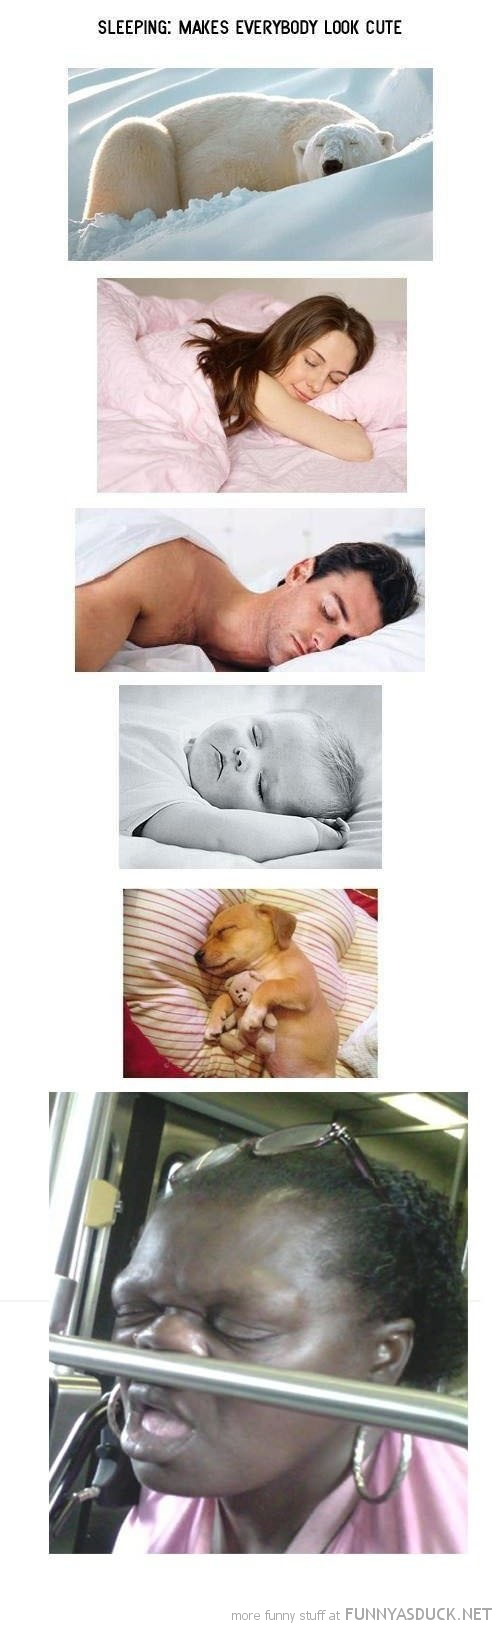 sleeping makes everybody look cute ugly woman funny pics pictures pic picture image photo images photos lol